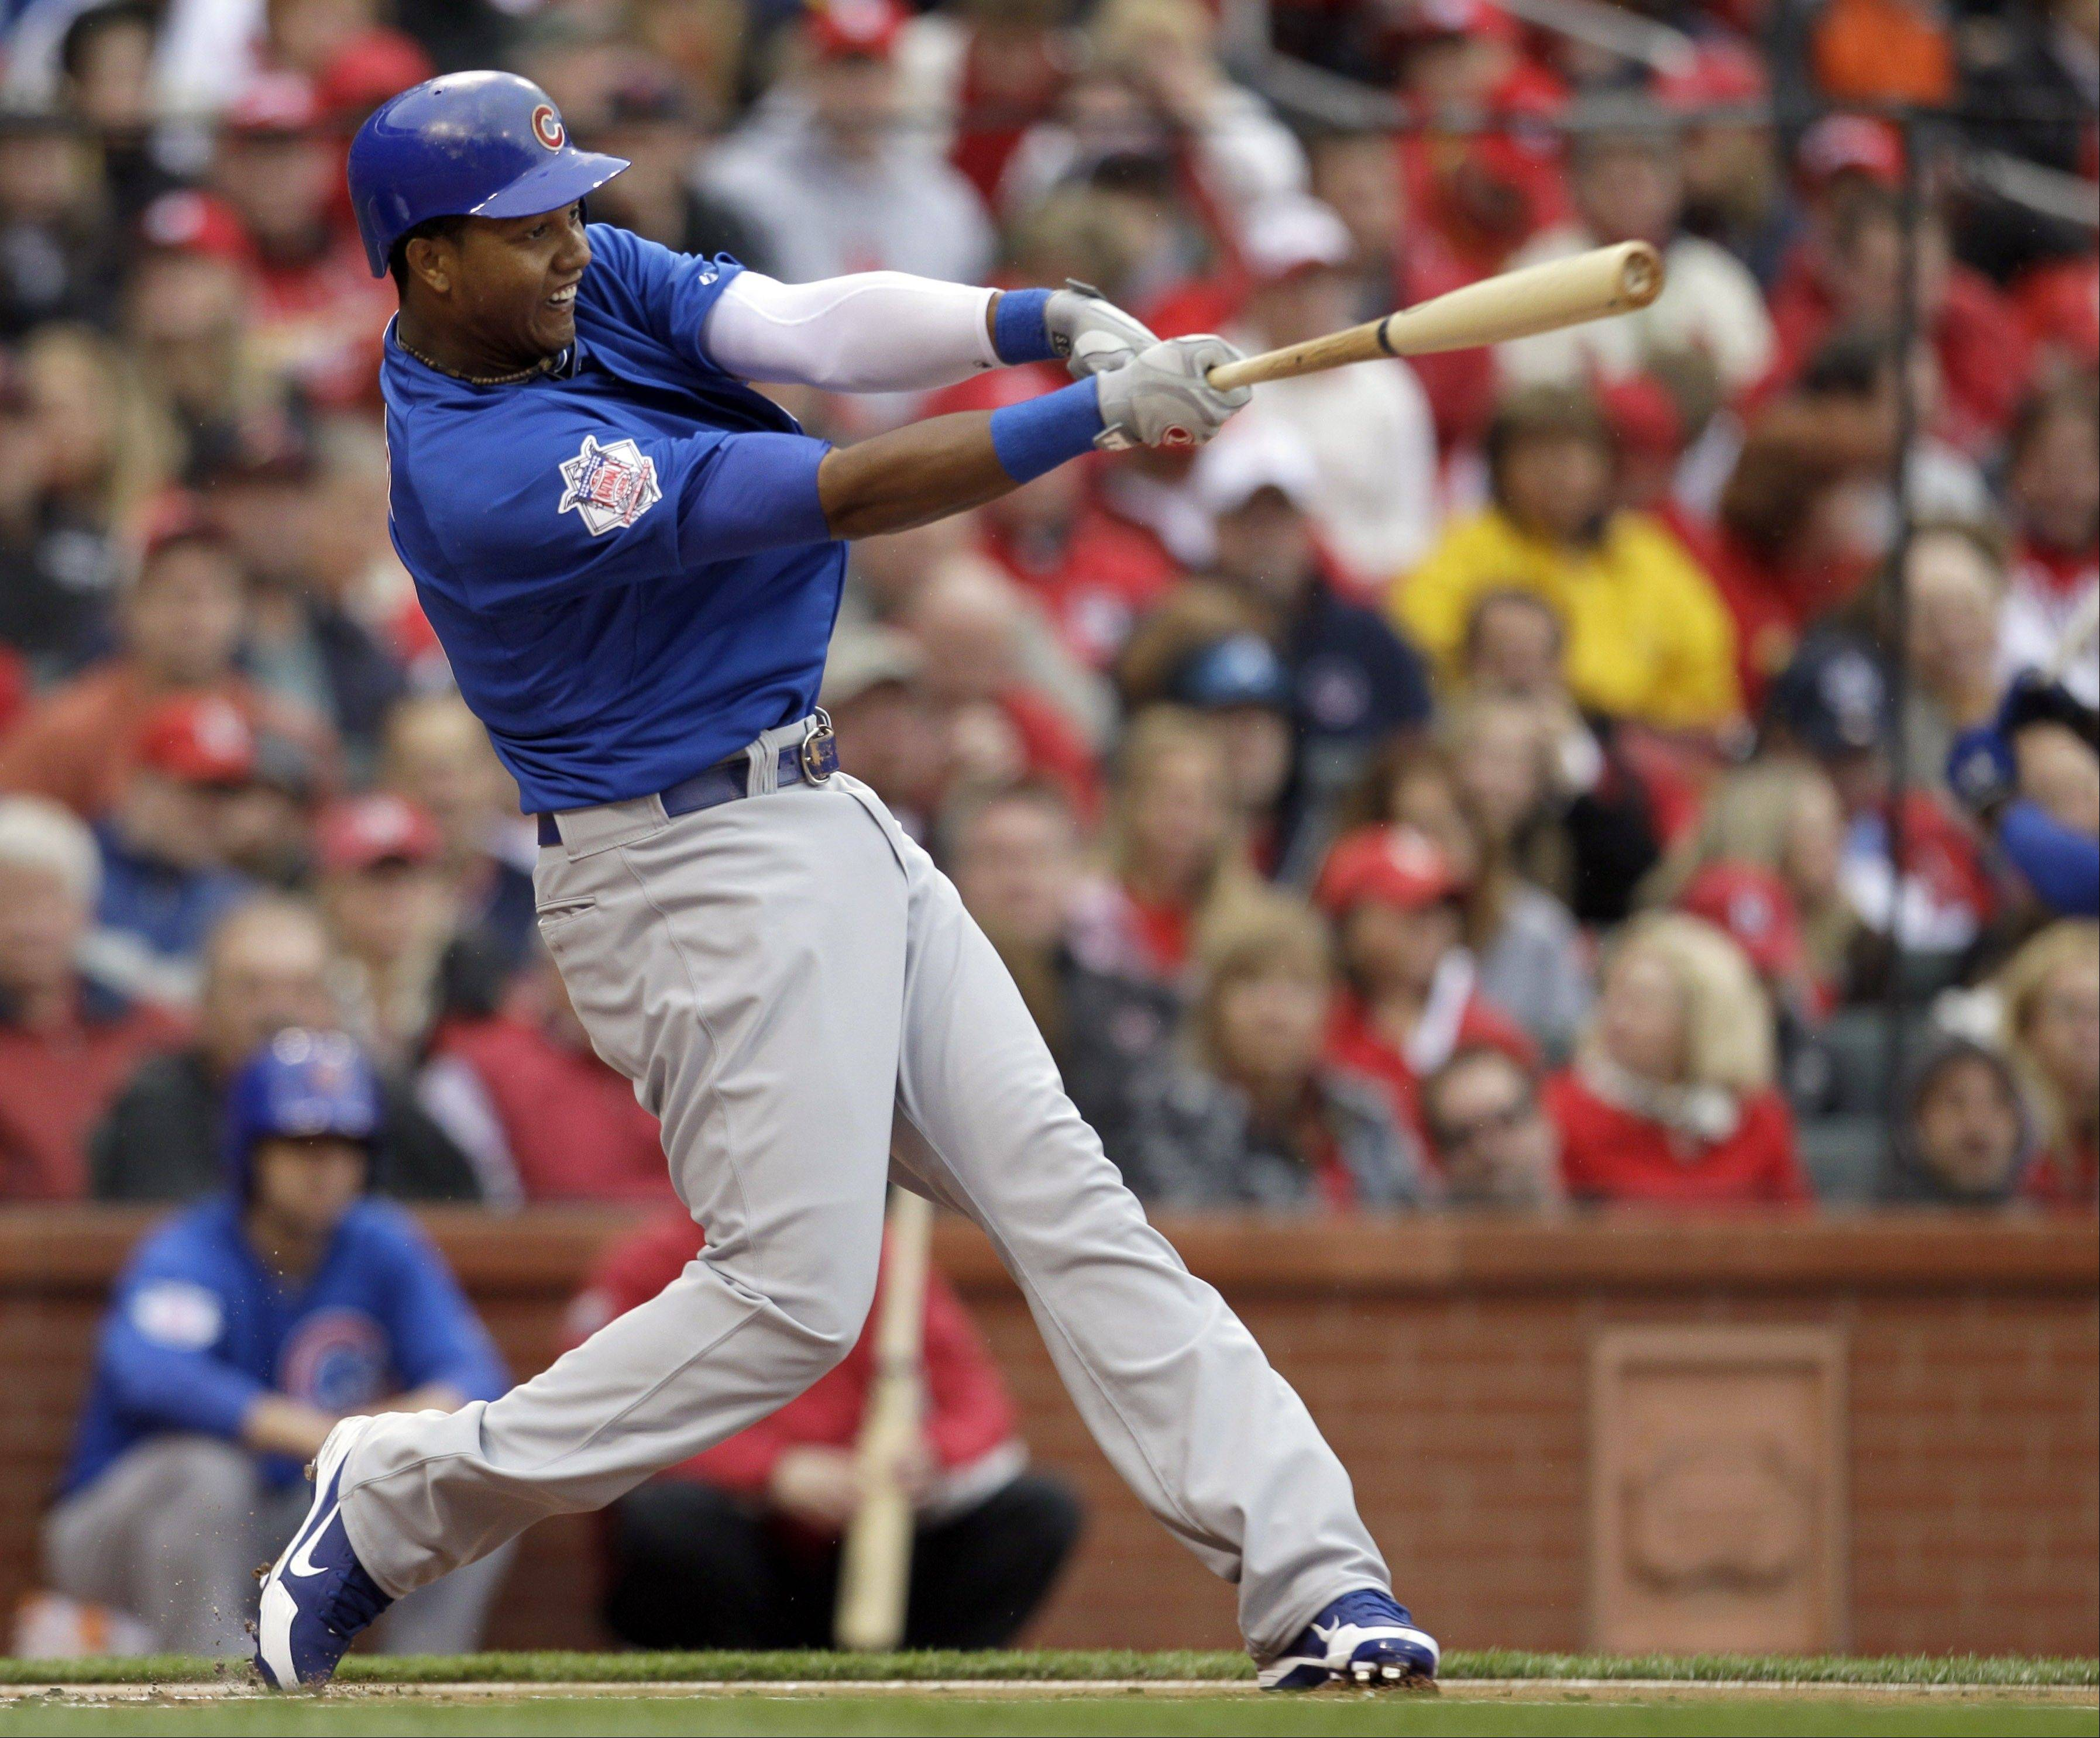 Starlin Castro had a .332 on-base percentage after the all-star break last season.